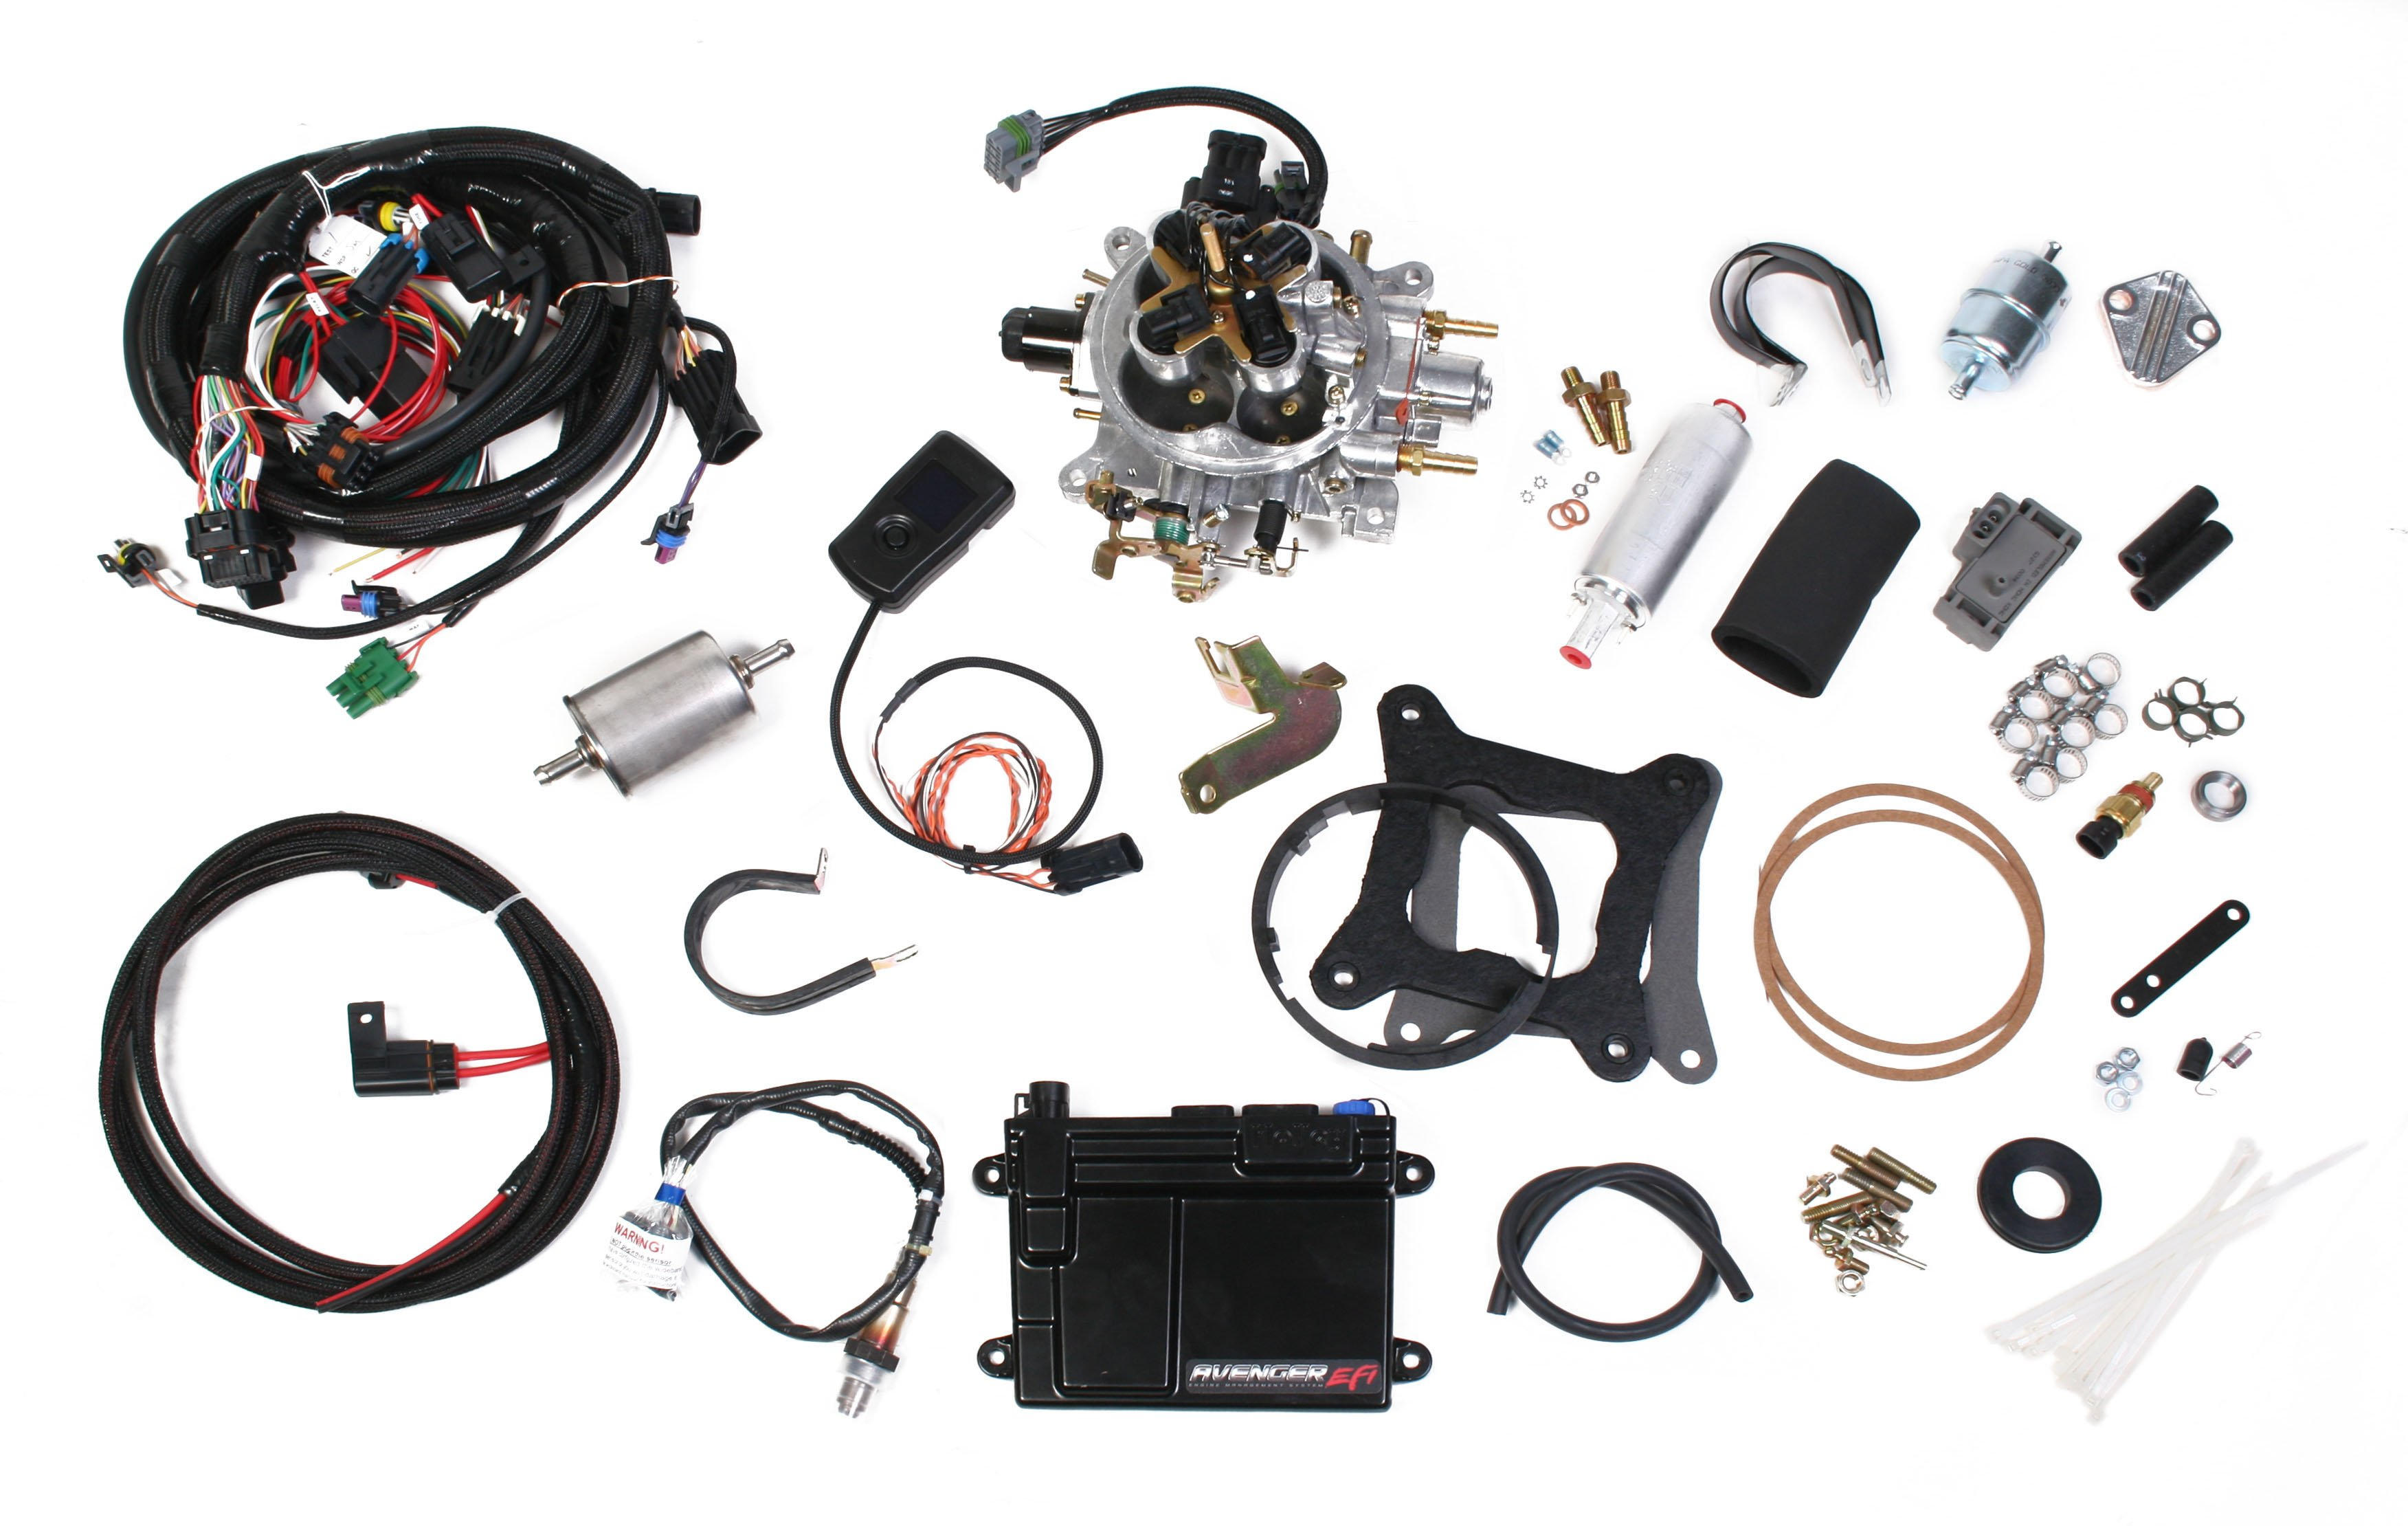 tbi fuel injection wiring harness holley efi 550 400 avenger efi 4bbl throttle body fuel injection  holley efi 550 400 avenger efi 4bbl